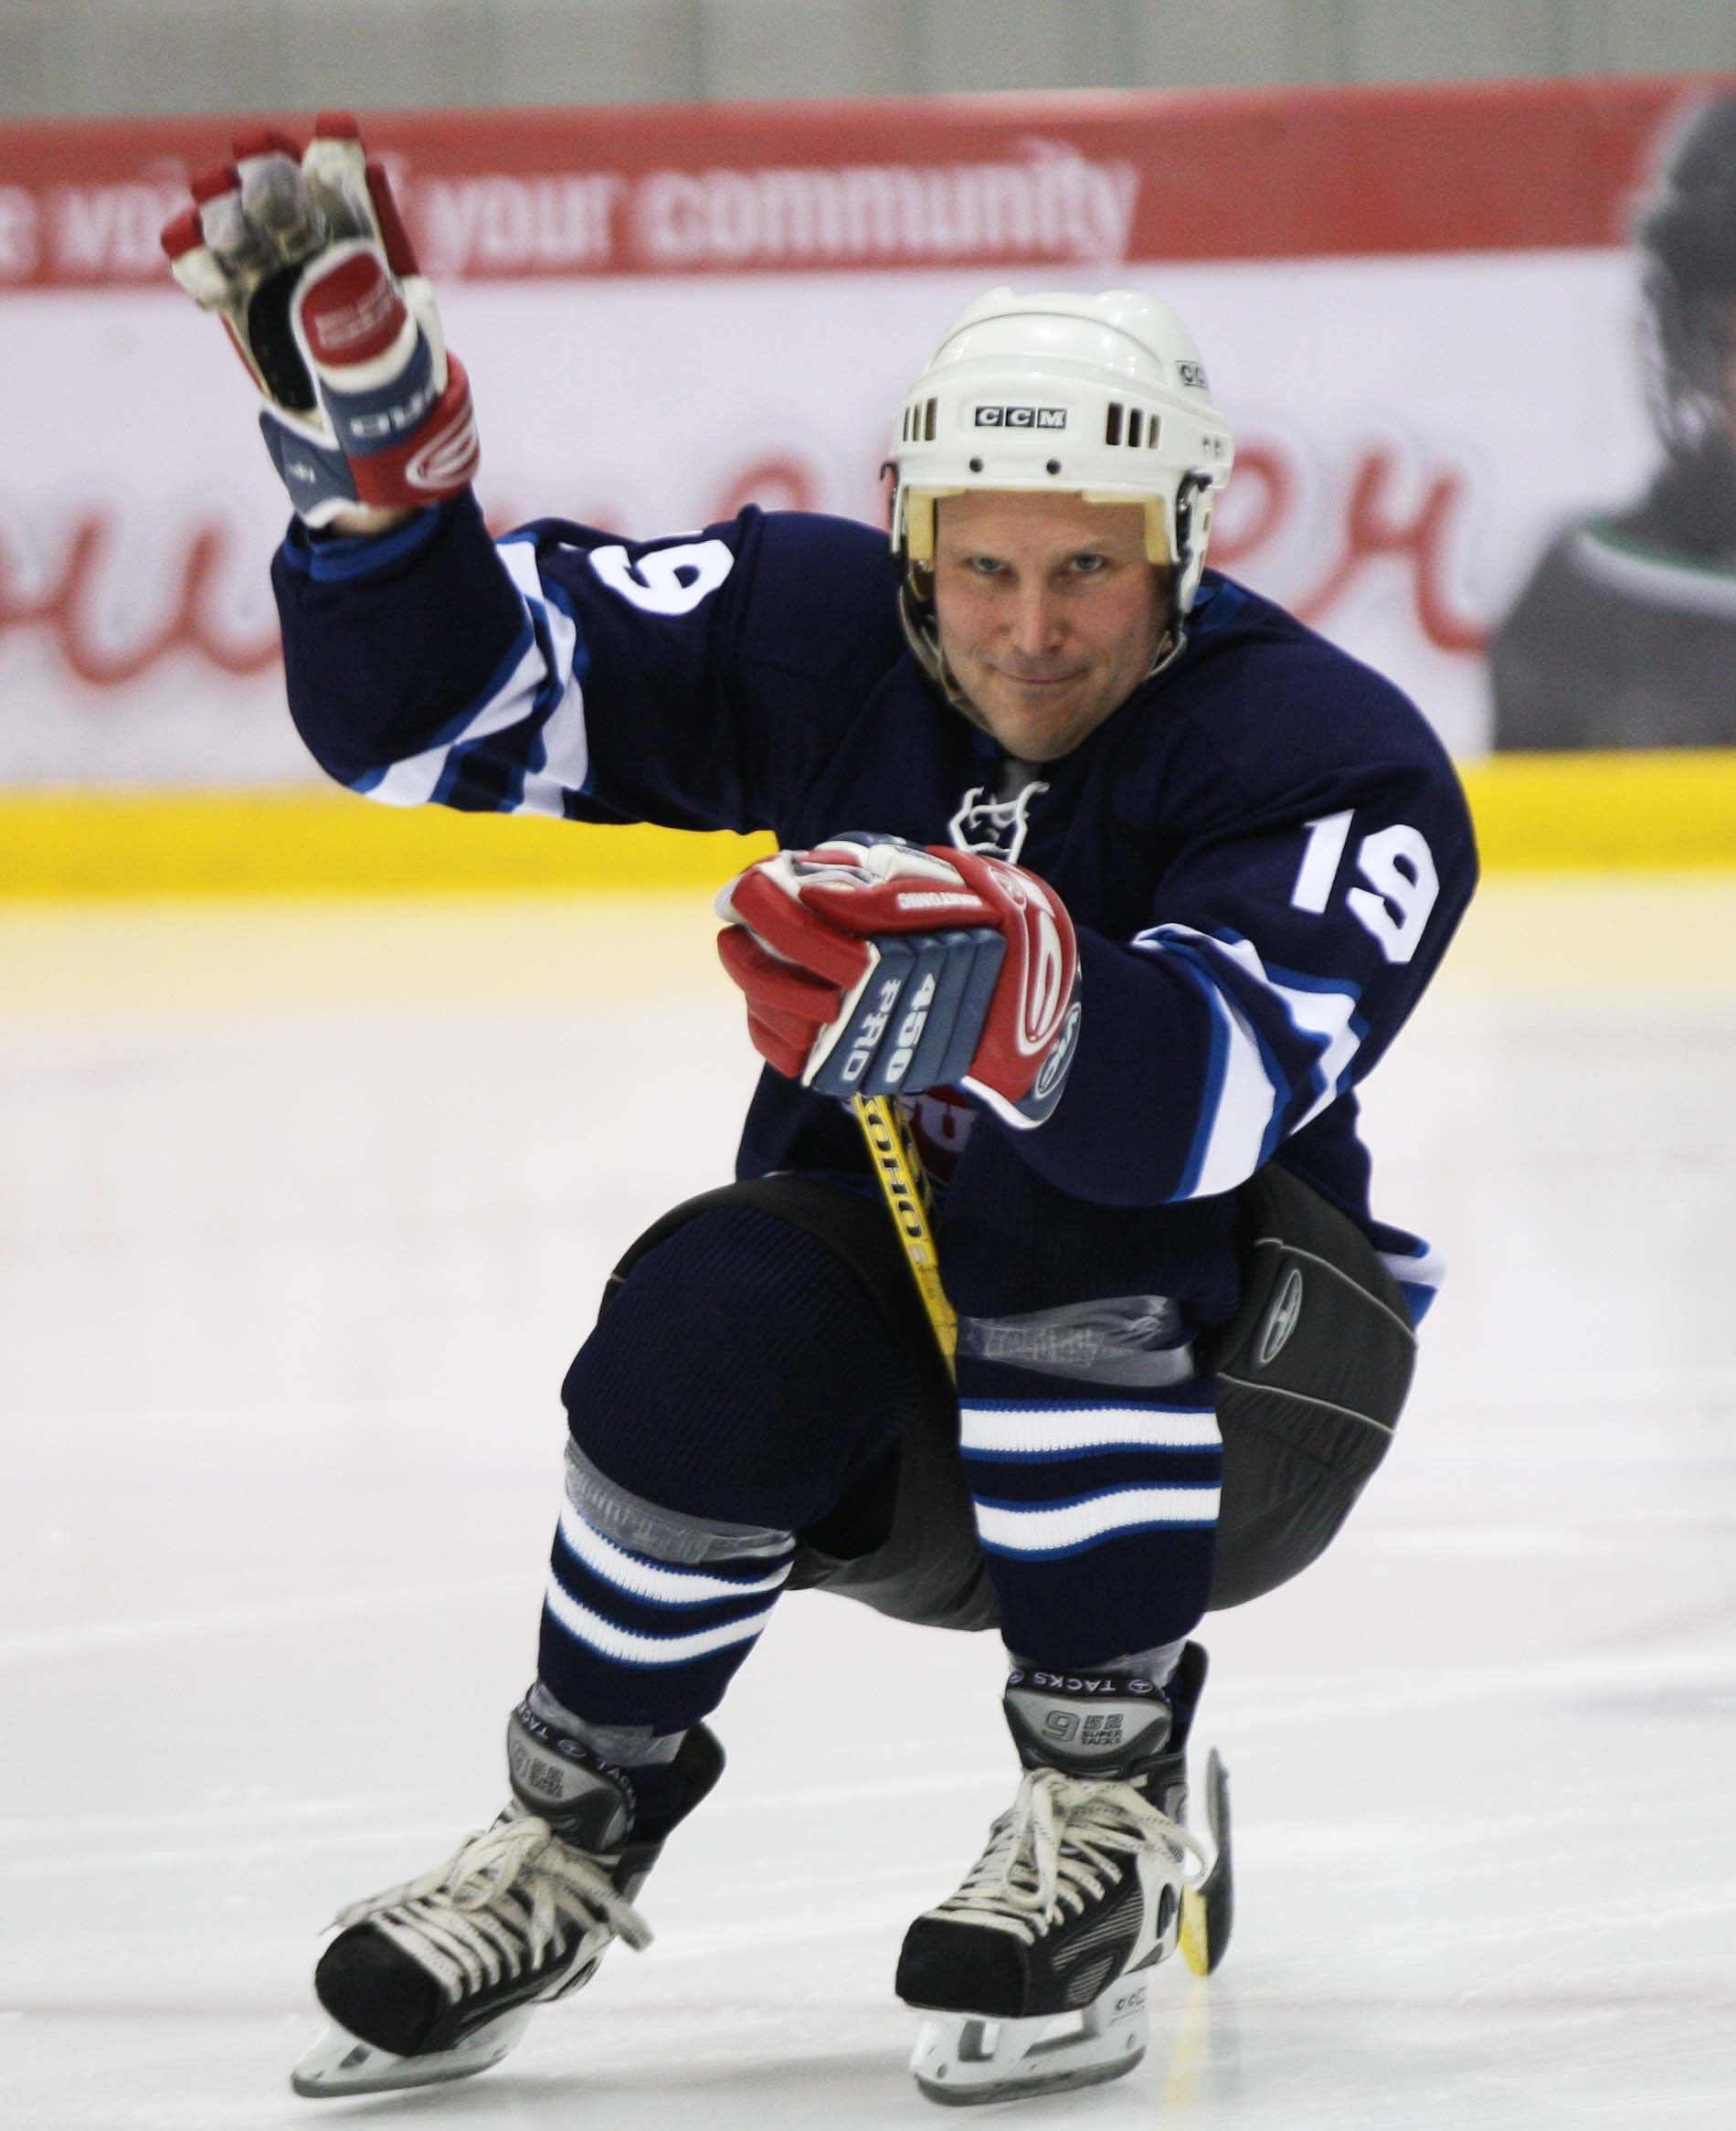 Team Rockers' Stephen Carroll of the Weakerthans makes his grand entry at the 11th annual Juno Cup.